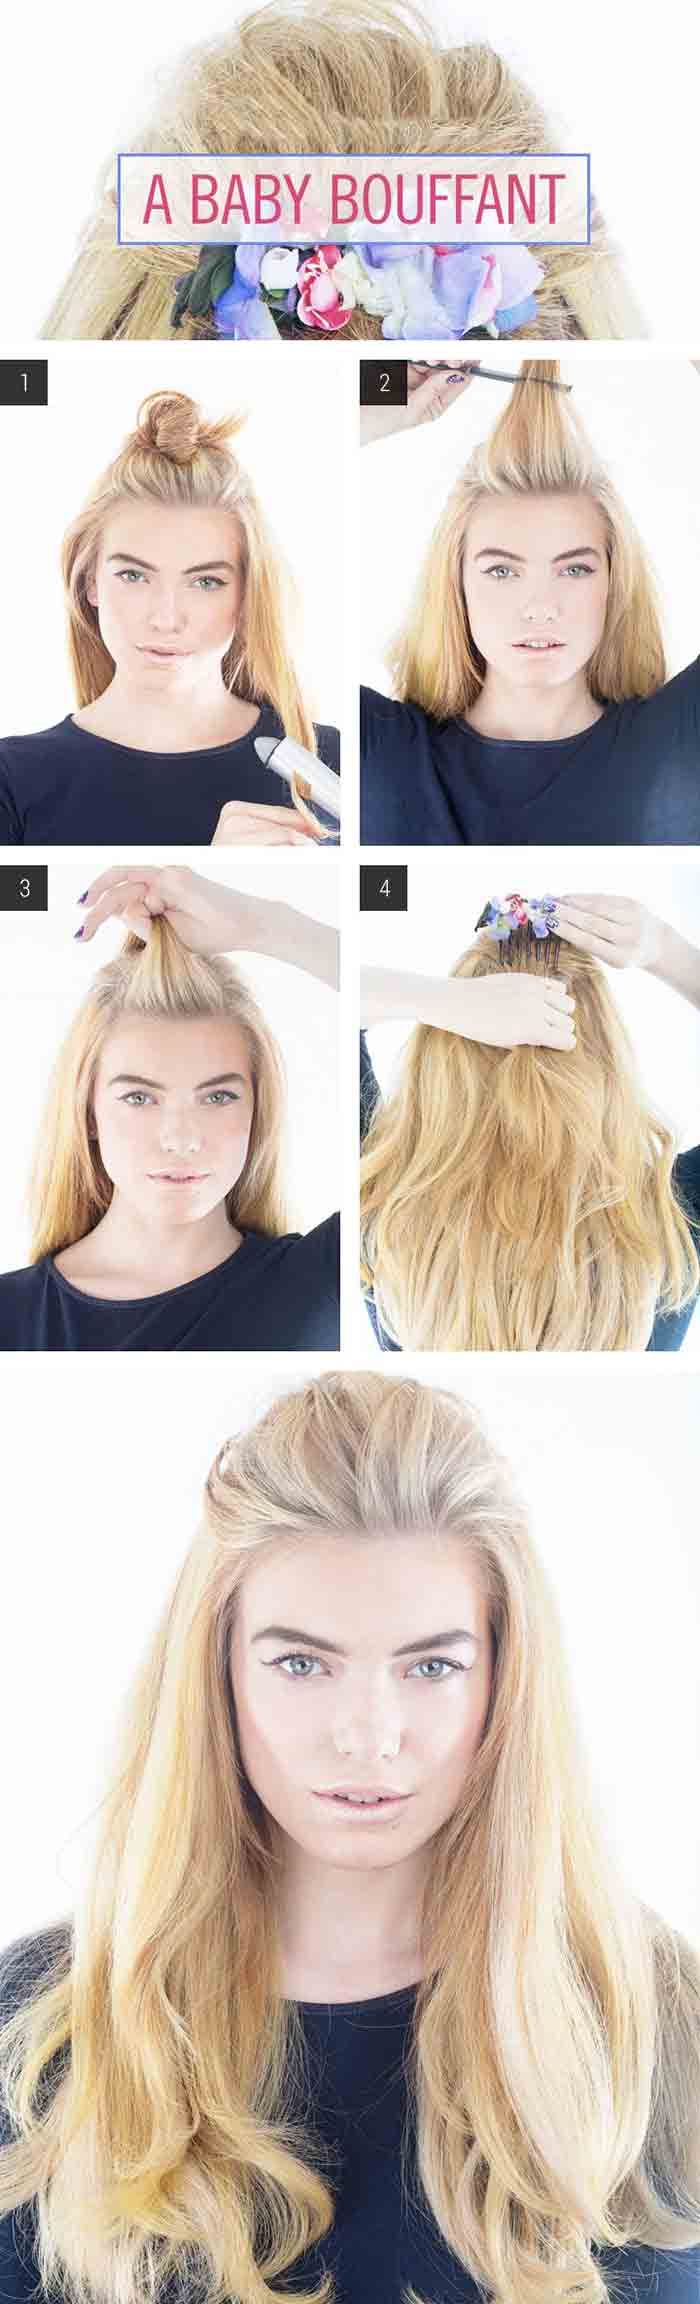 Hair tease tutorial step by step